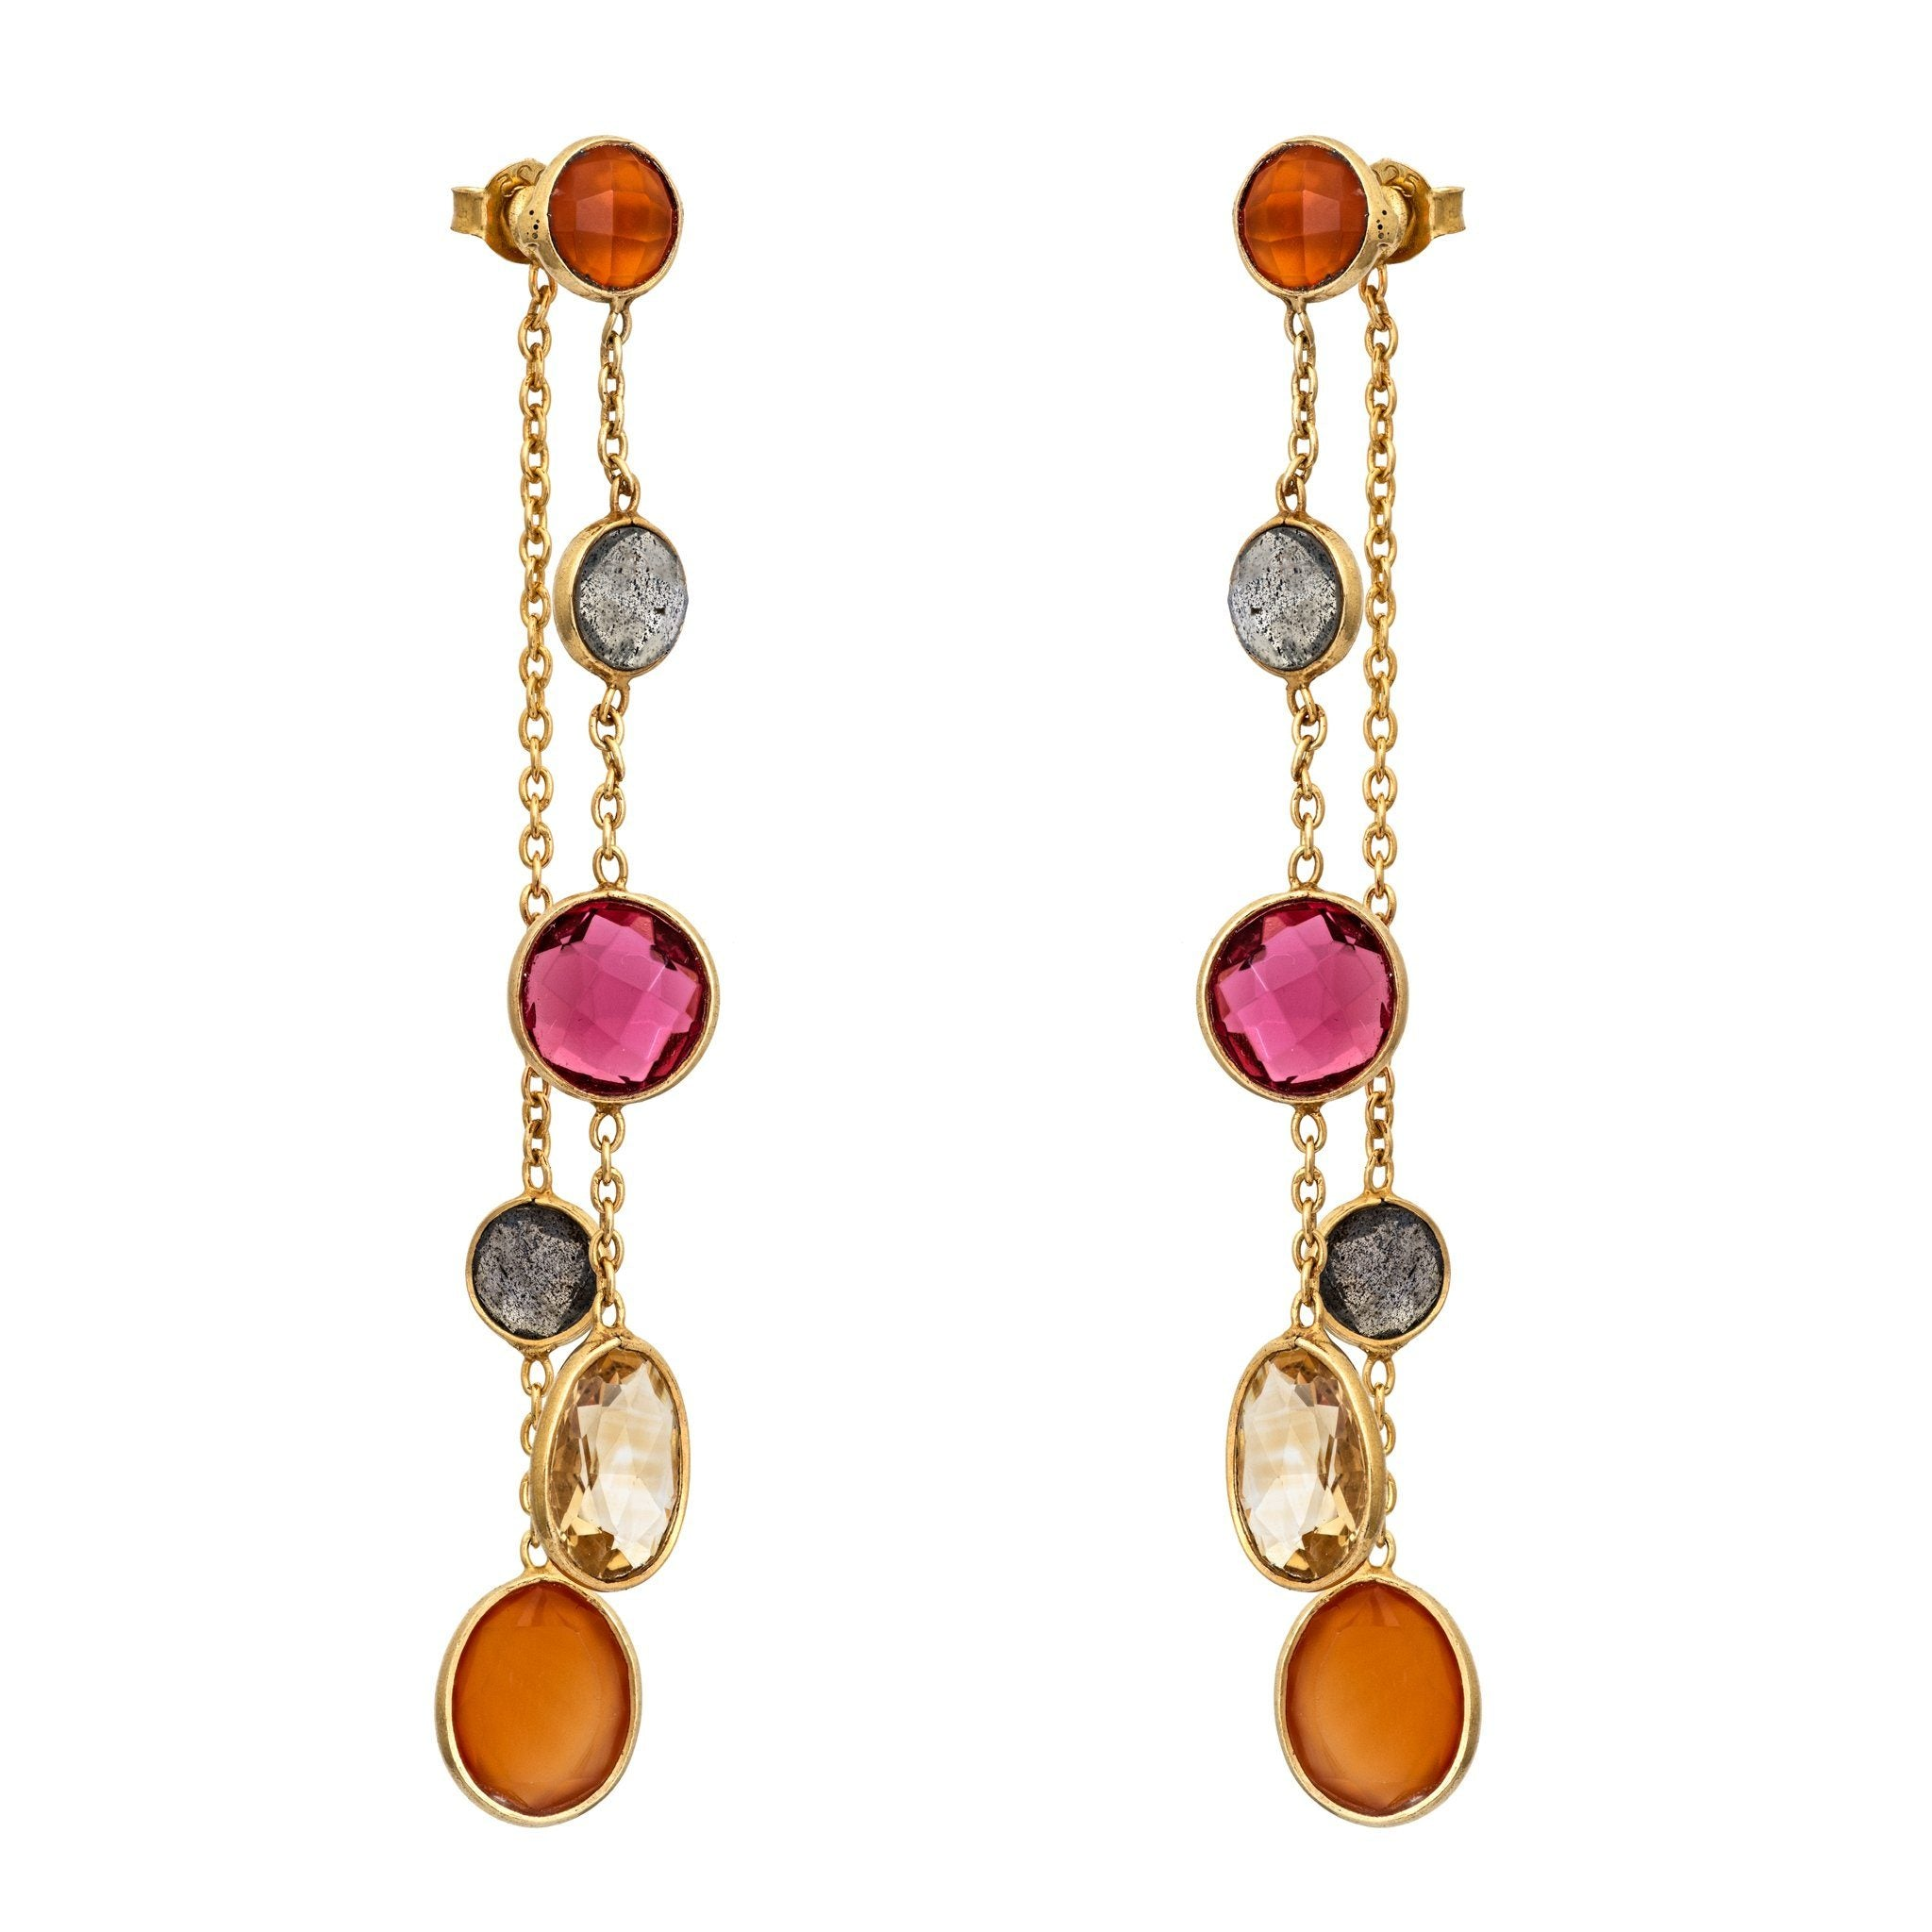 BUA summer color stones earrings - MadamSiam